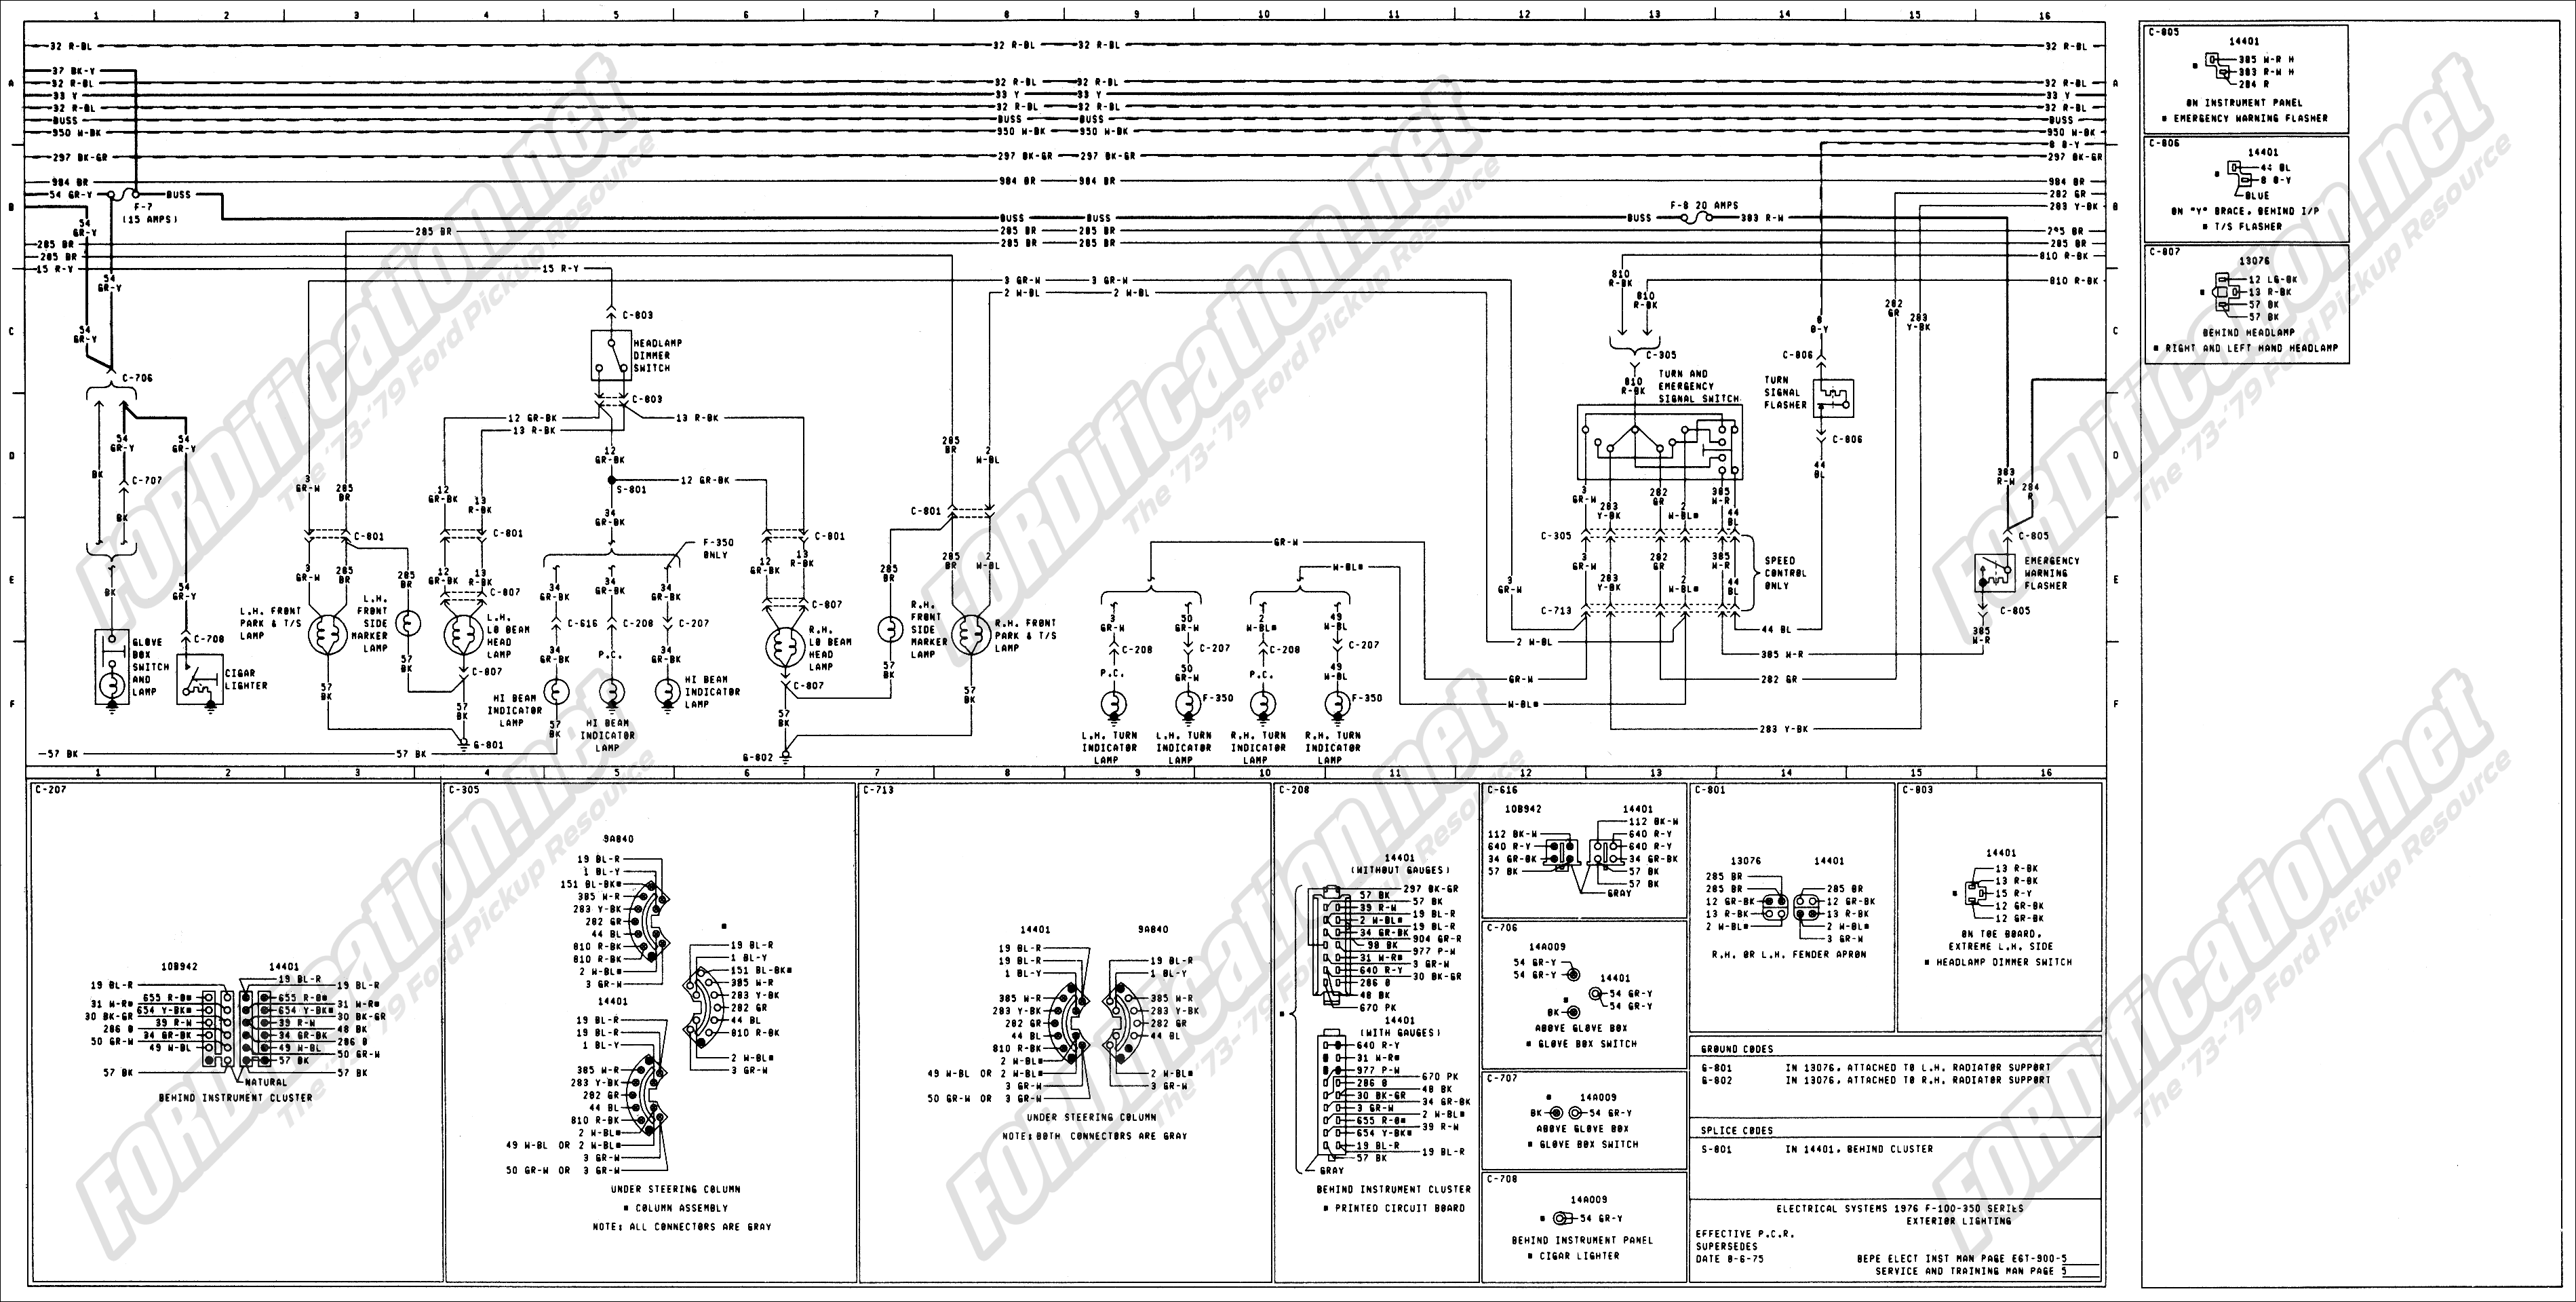 1973 1979 ford truck wiring diagrams schematics fordification net rh fordification net 65 Ford F100 Wiring Diagram 1965 Ford Truck Wiring Diagram